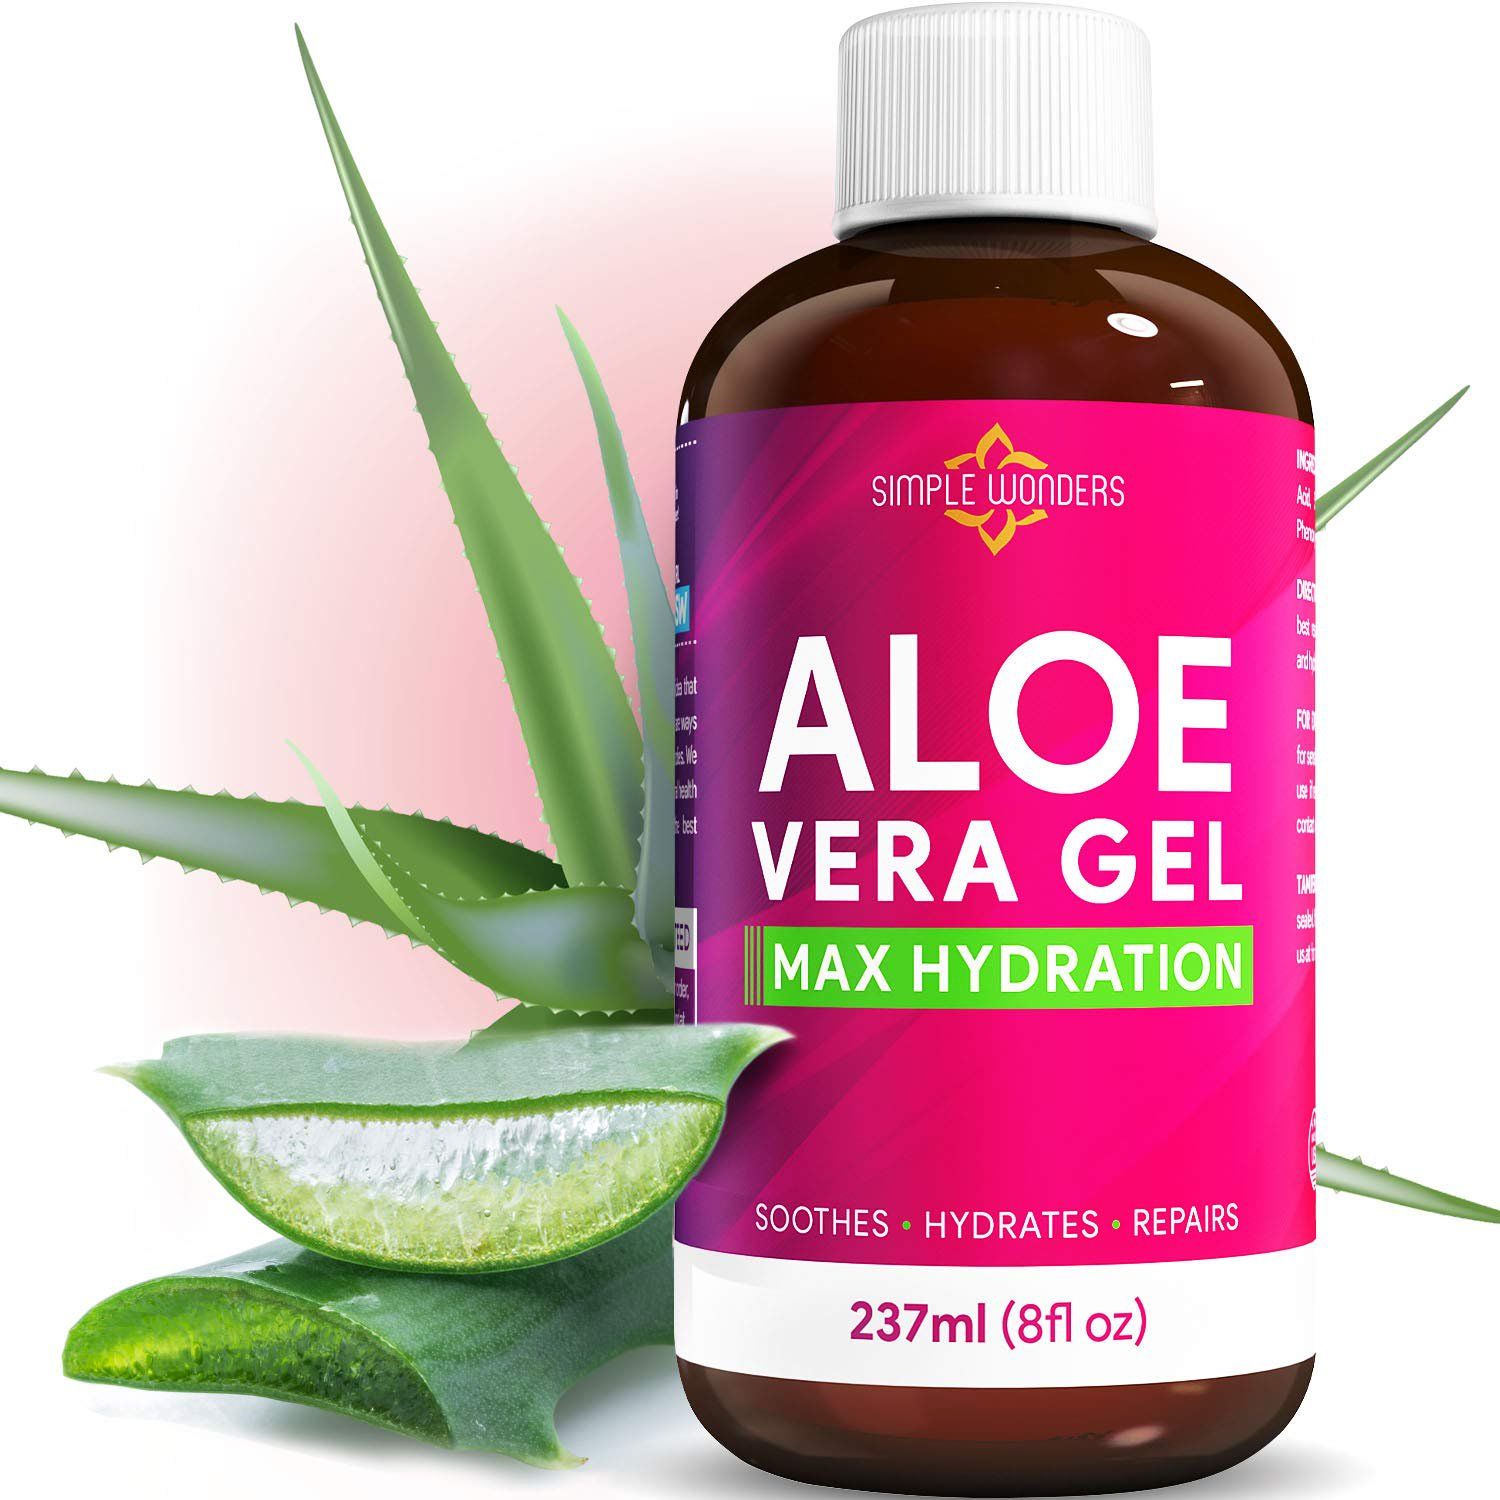 100 Pure Aloe Vera Gel Organic Maximum Hydration For Face Skin And Hair From Plant